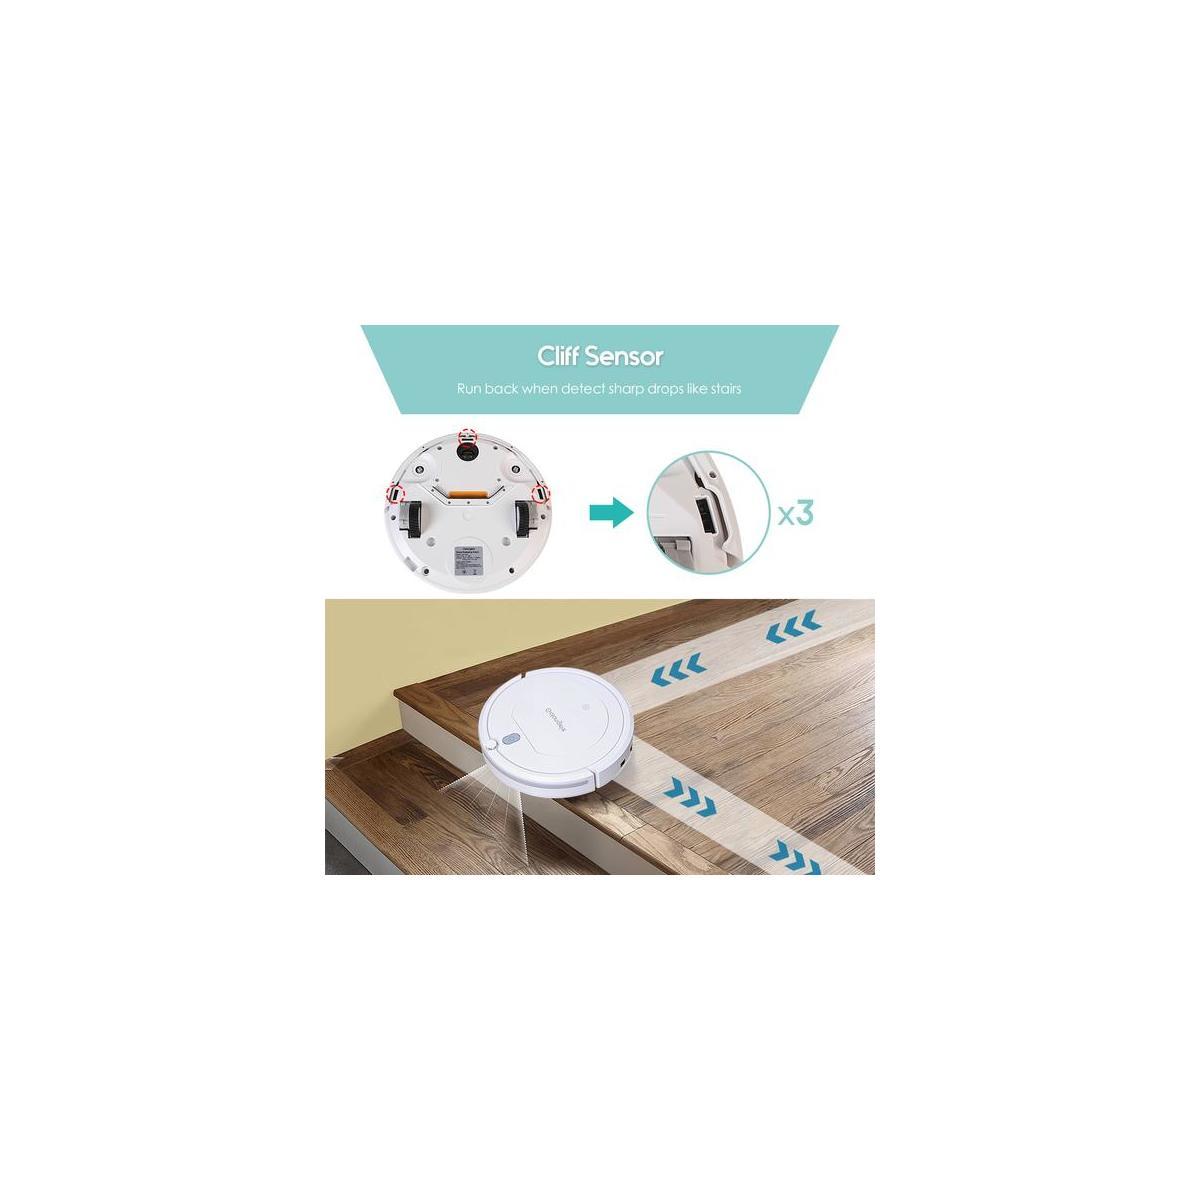 Golongele Smart Clean Robot Vacuum Cleaner with Remote Control and HEPA Filter HB-1001 on Deal